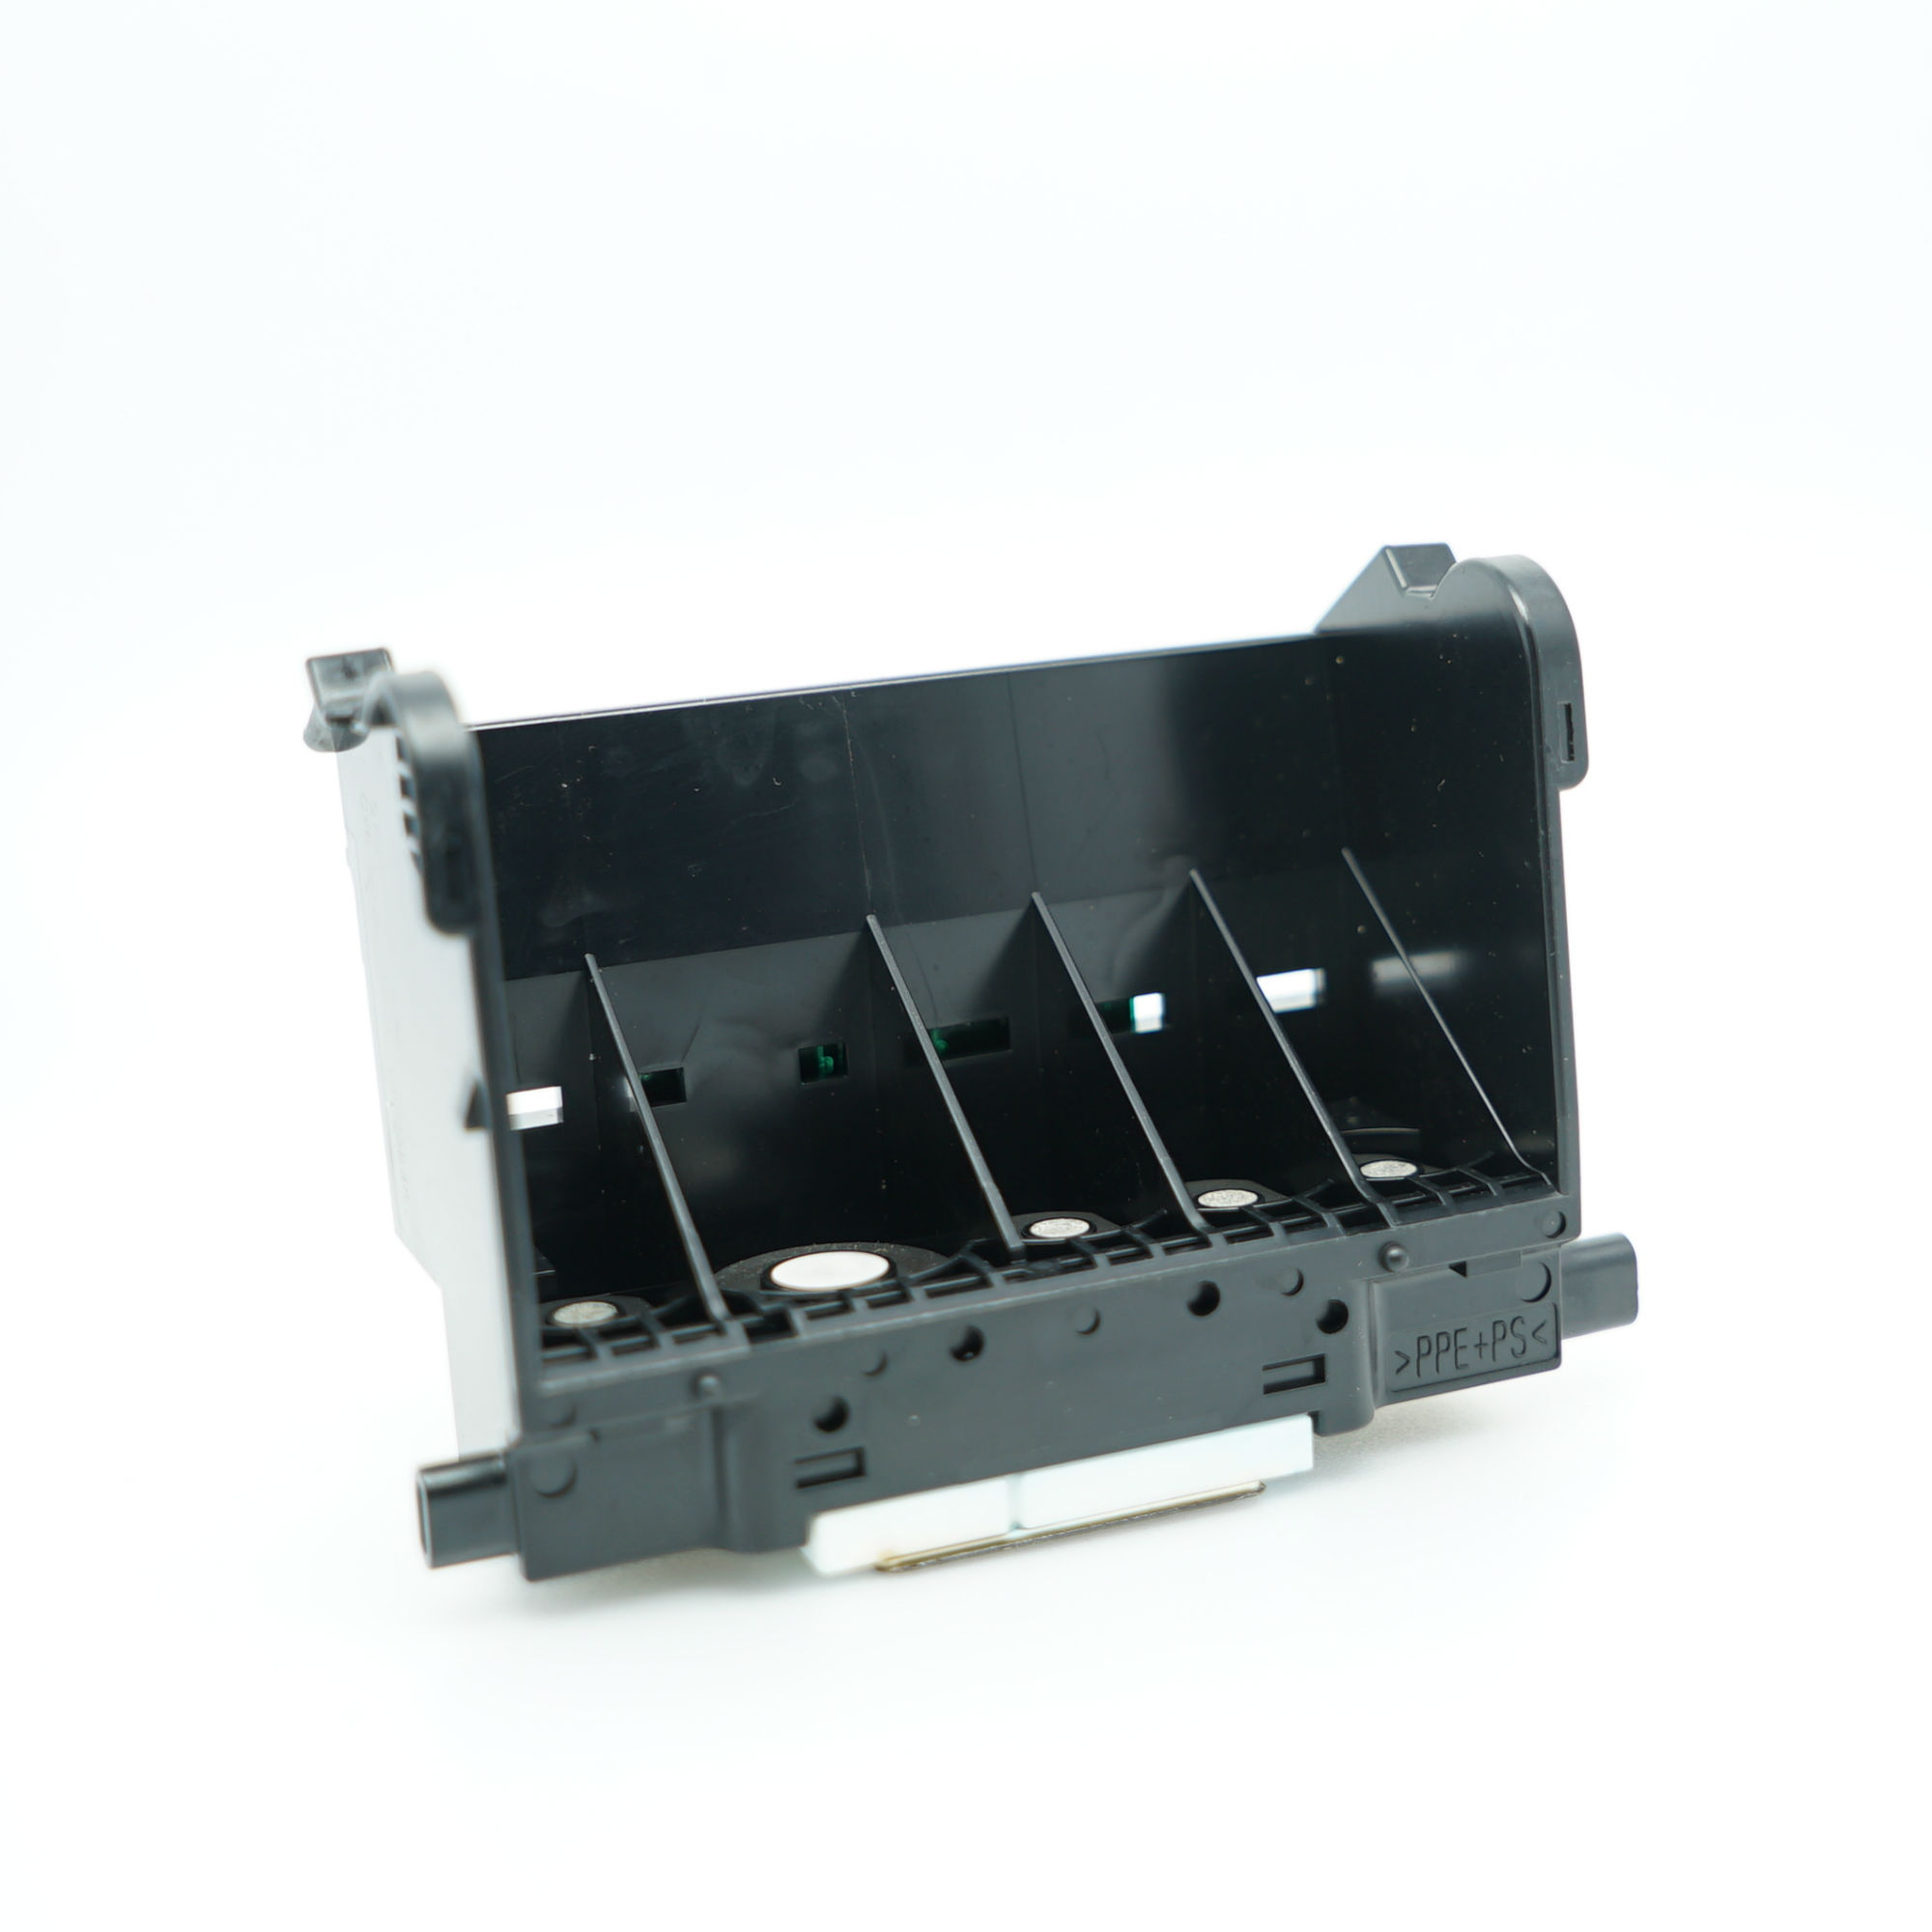 only guarantee the print quality of black Printhead QY6-0075 Print Head FOR CANON IP4500 IP5300 MP610 MP810 MX850 SHIPPING FREE original qy6 0075 qy6 0075 000 printhead print head printer head for canon ip5300 mp810 ip4500 mp610 mx850